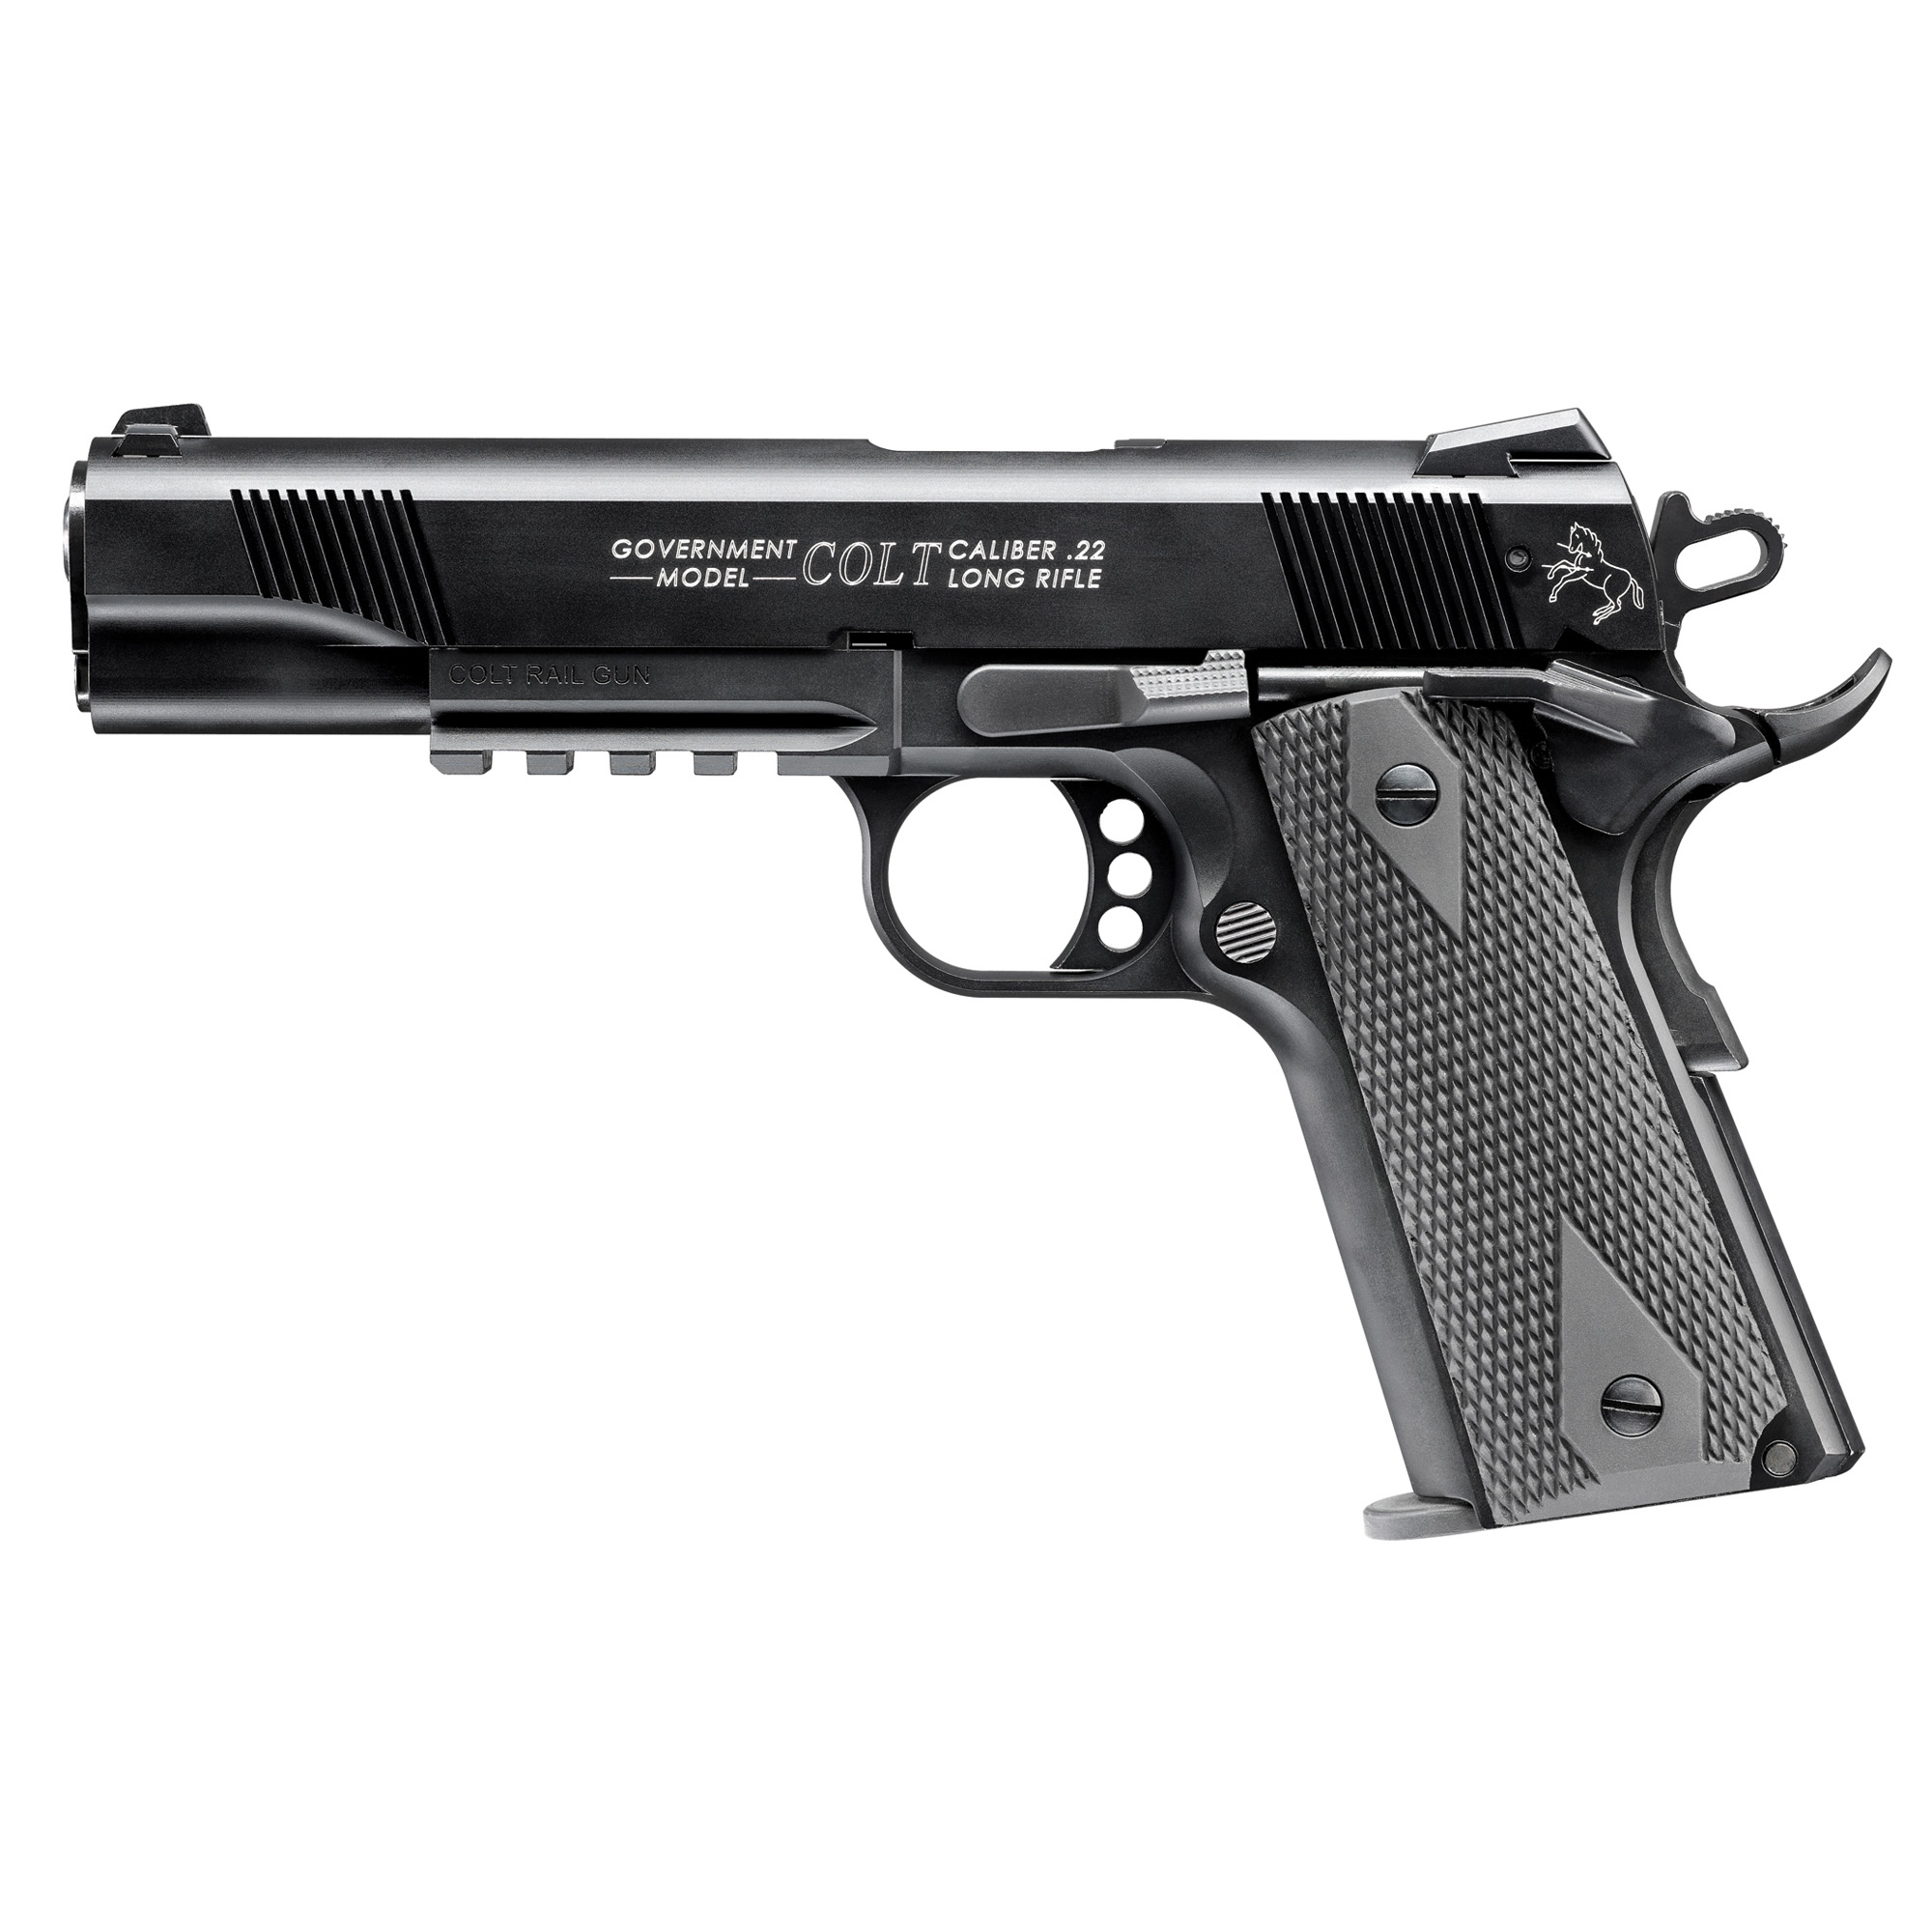 """The Colt 1911 A1 Rail Gun is the modern combat version of the legendary Colt 1911 handgun. It includes low profile combat sights"""" beavertail safety"""" and an accessory rail under the barrel. The Colt Government 1911 A1 Rail Gun Semi-Automatic Pistol in .22 L.R. is manufactured exclusively by Walther under license from Colt. It is the only genuine Colt tactical rimfire replica available in the world."""